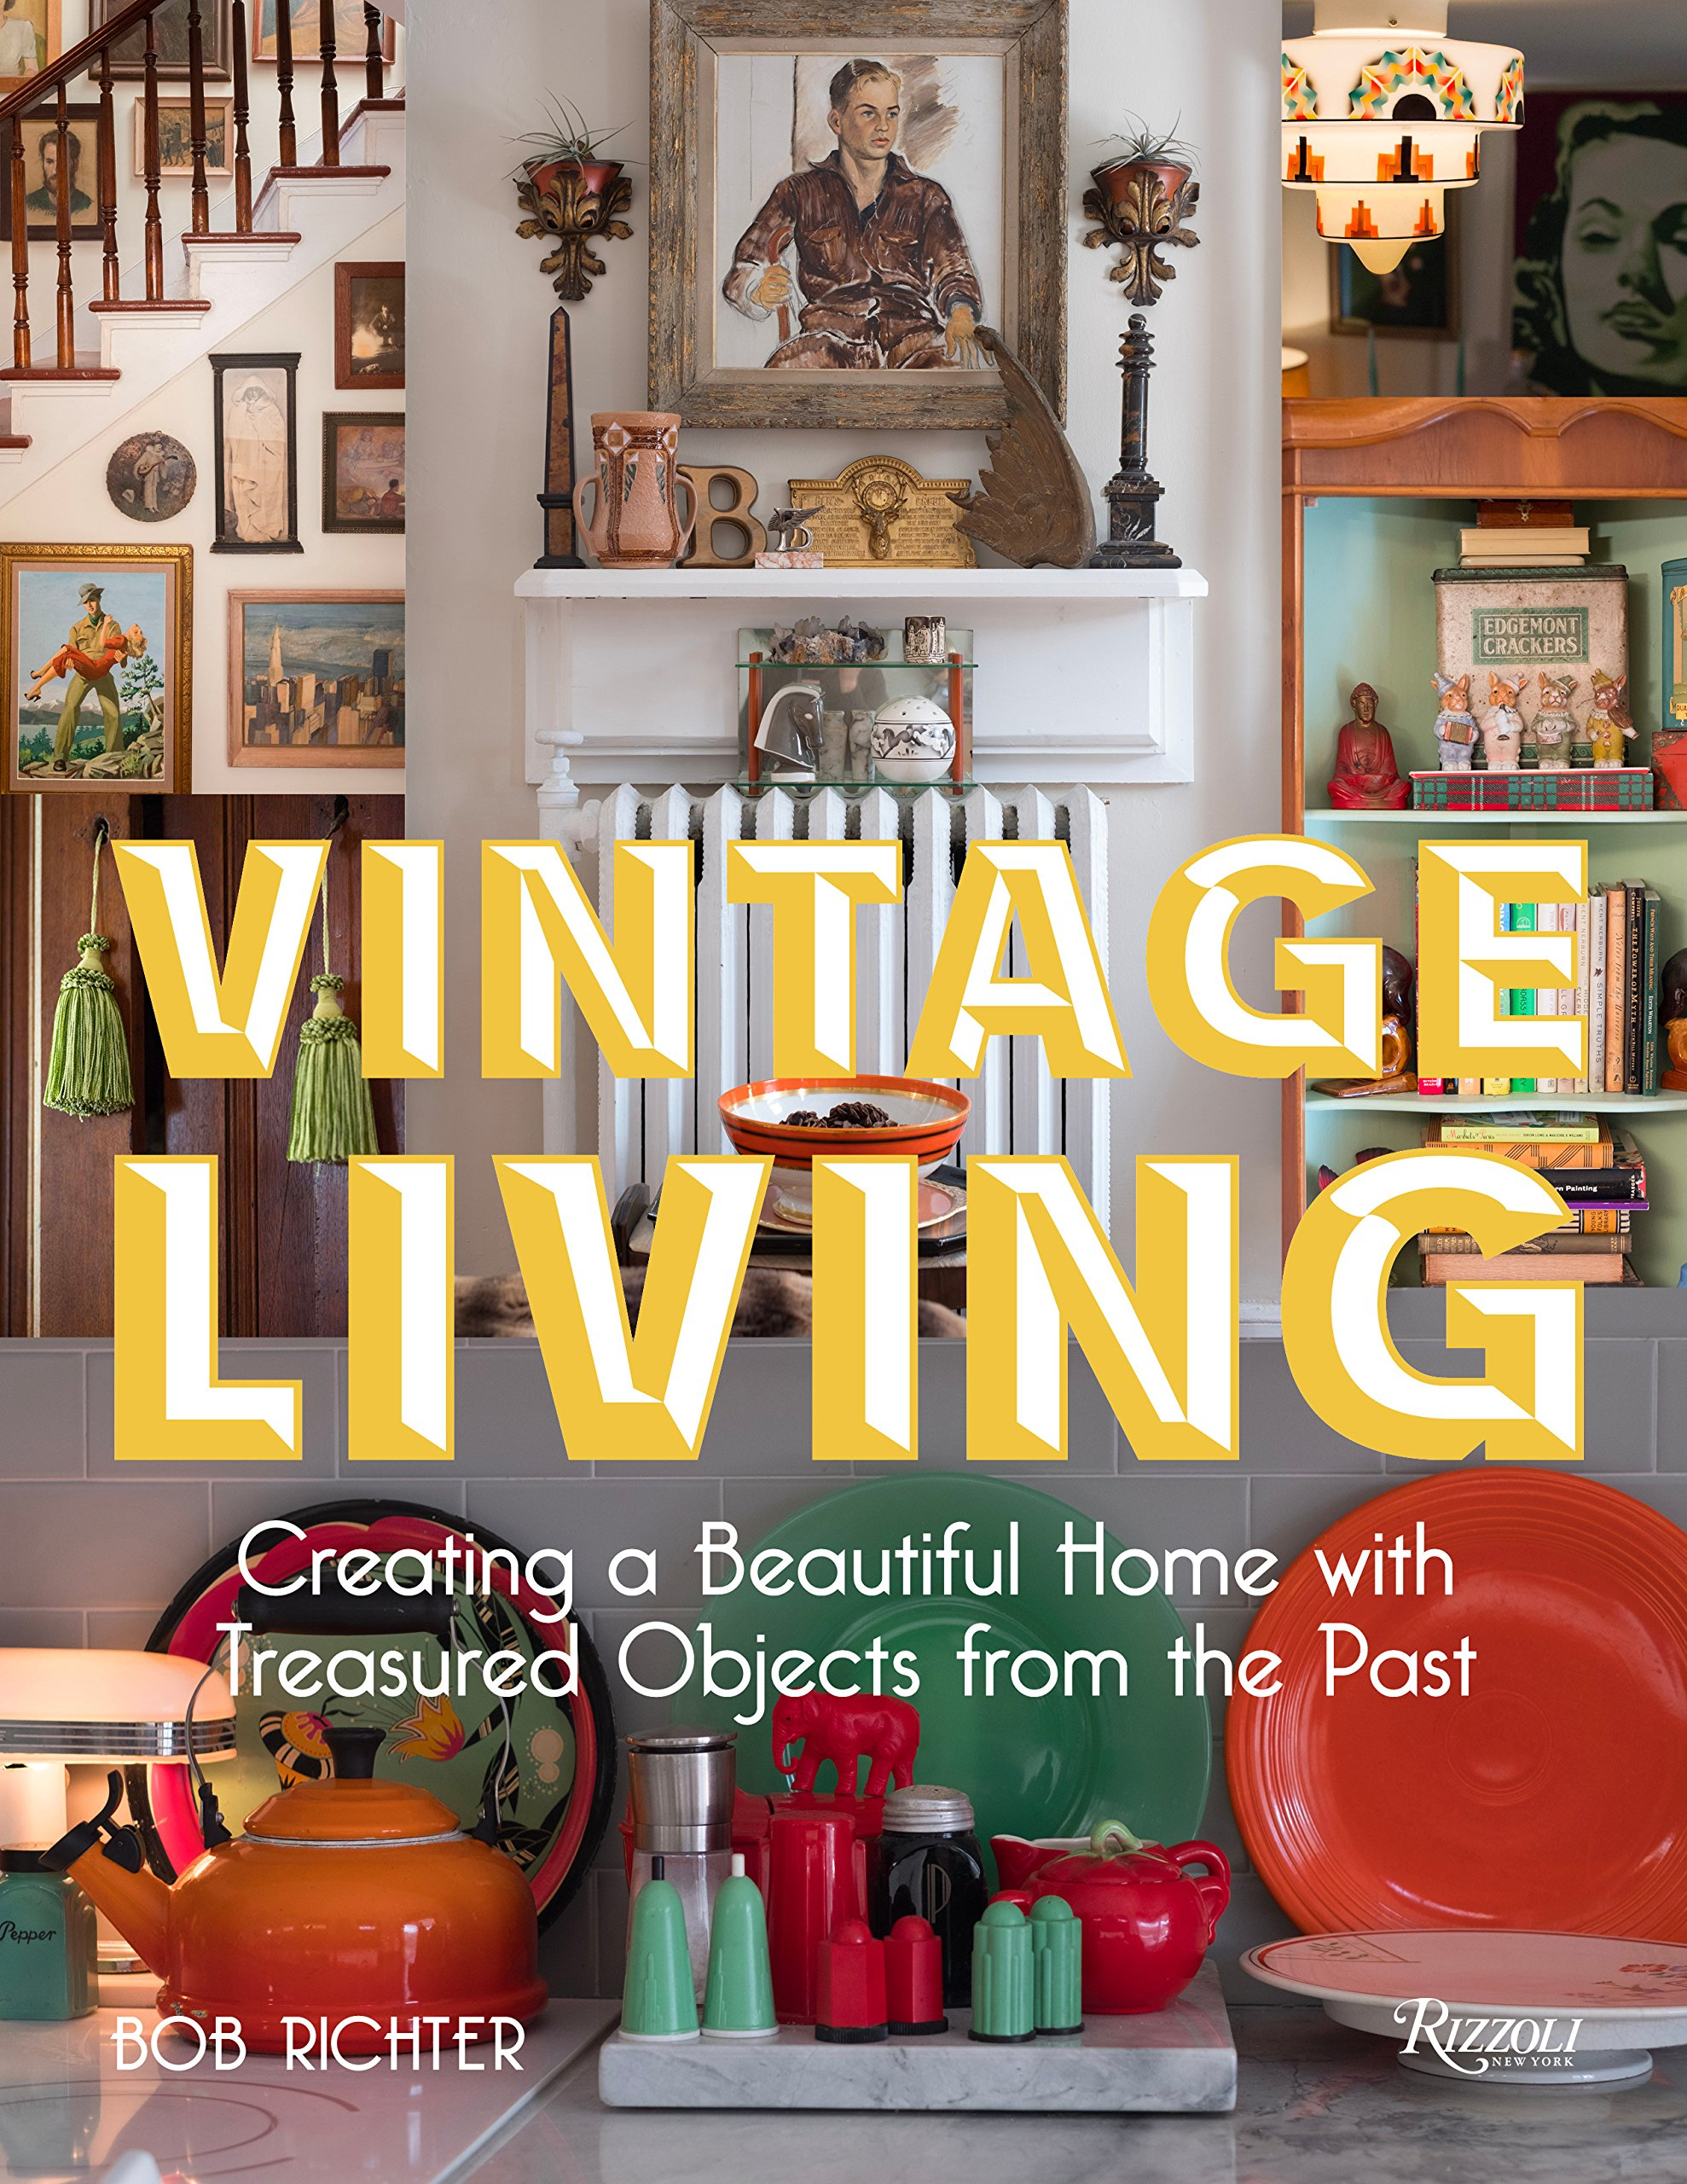 Vintage Living: Creating a Beautiful Home with Treasured Objects from the Past by Rizzoli